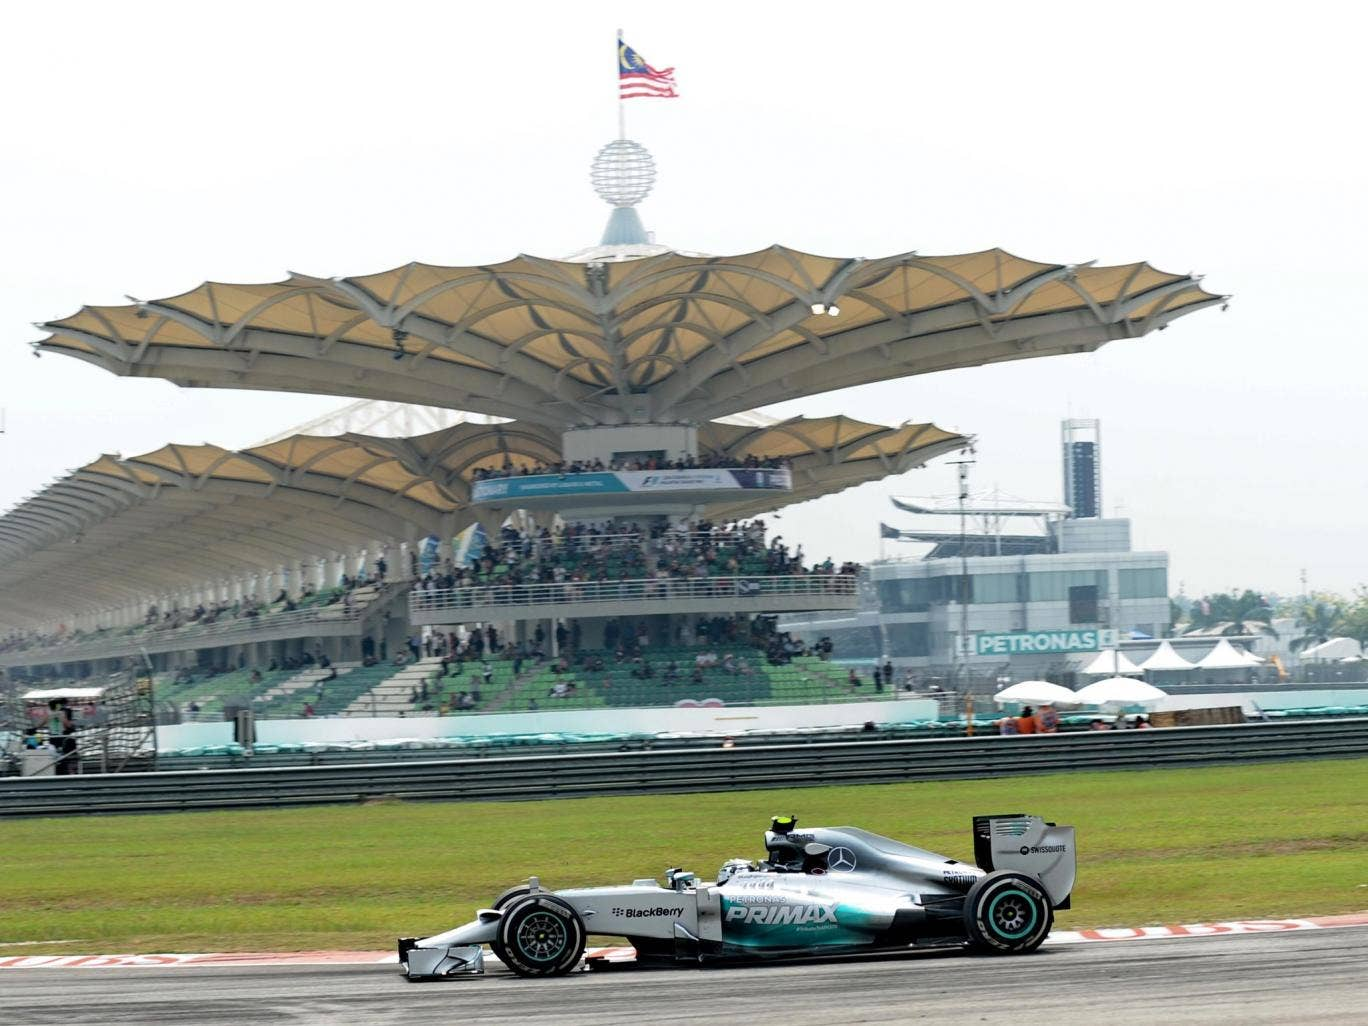 Nico Rosberg set the fastest time on Friday practice for the Malaysian Grand Prix